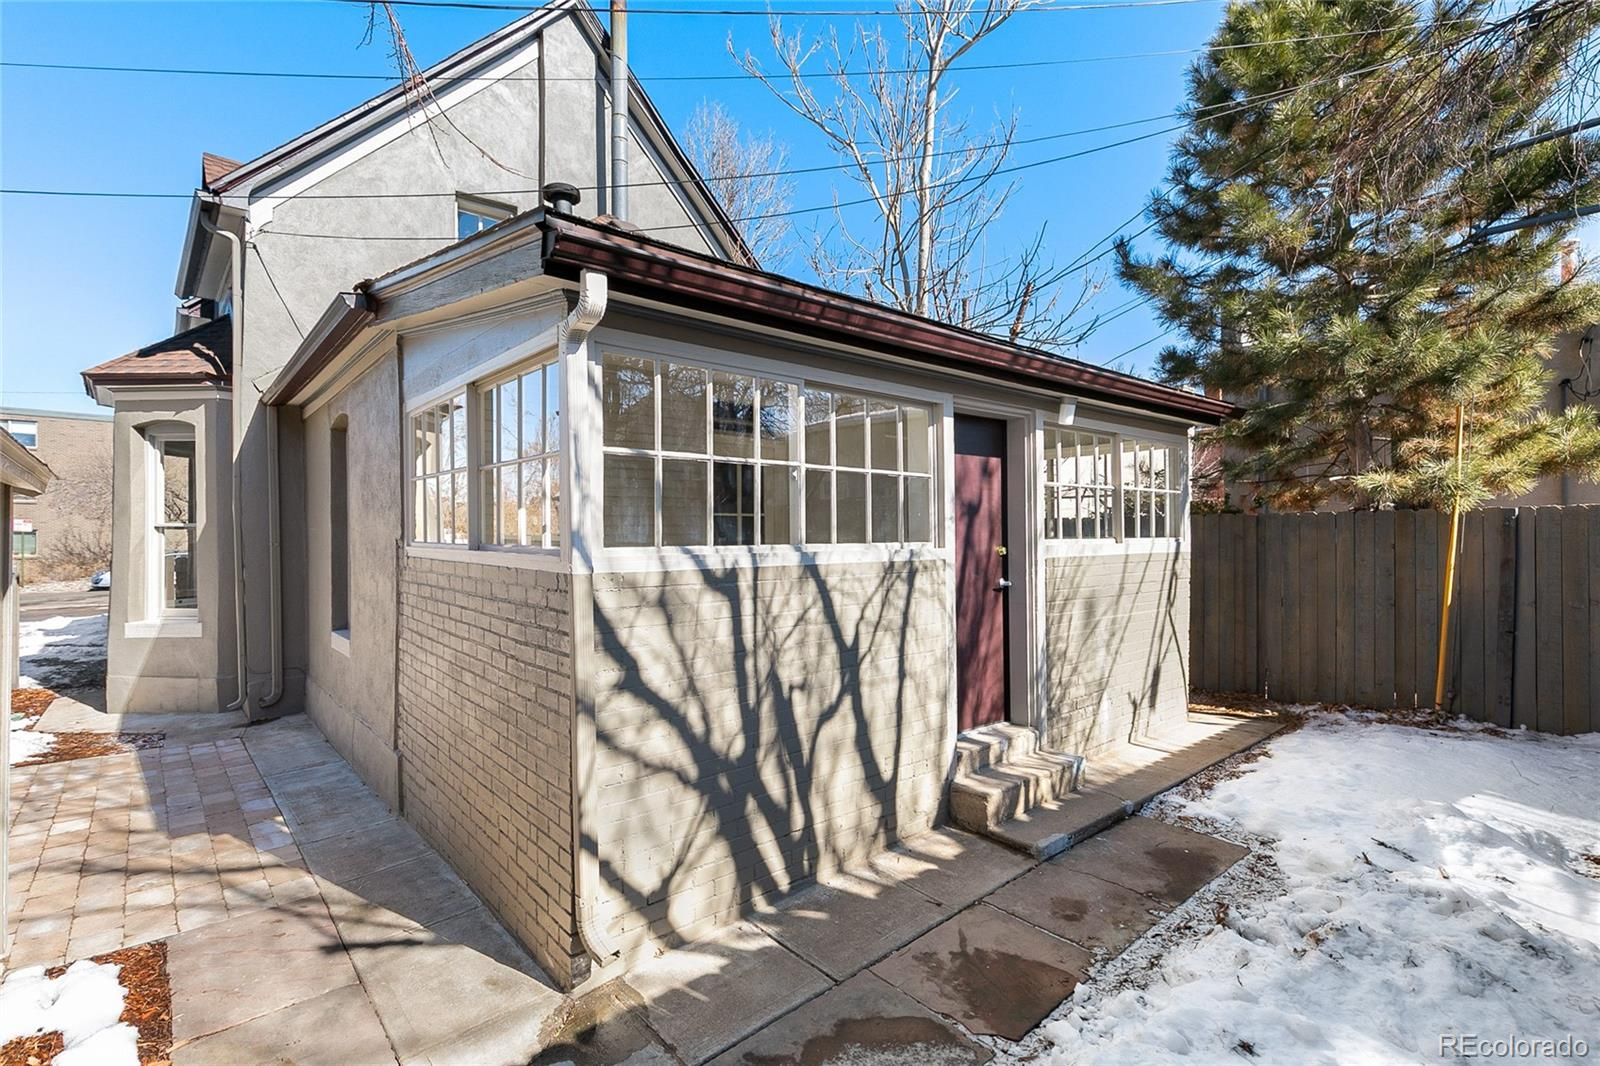 MLS# 4666448 - 22 - 308 W 4th Avenue, Denver, CO 80223